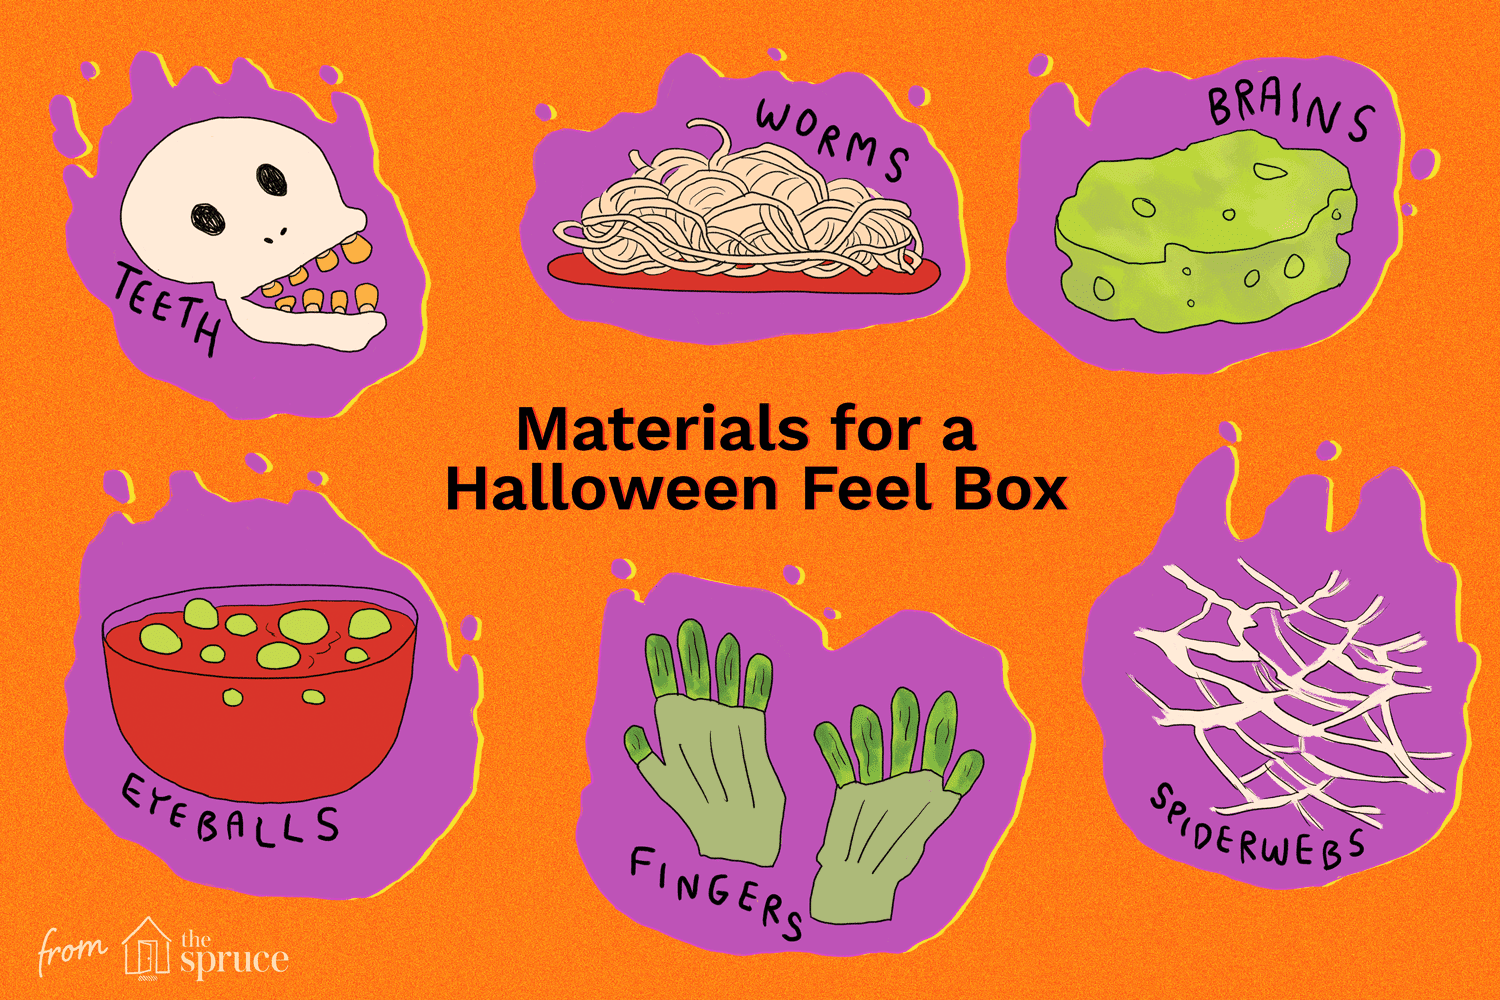 how to create and share a scary halloween feel box